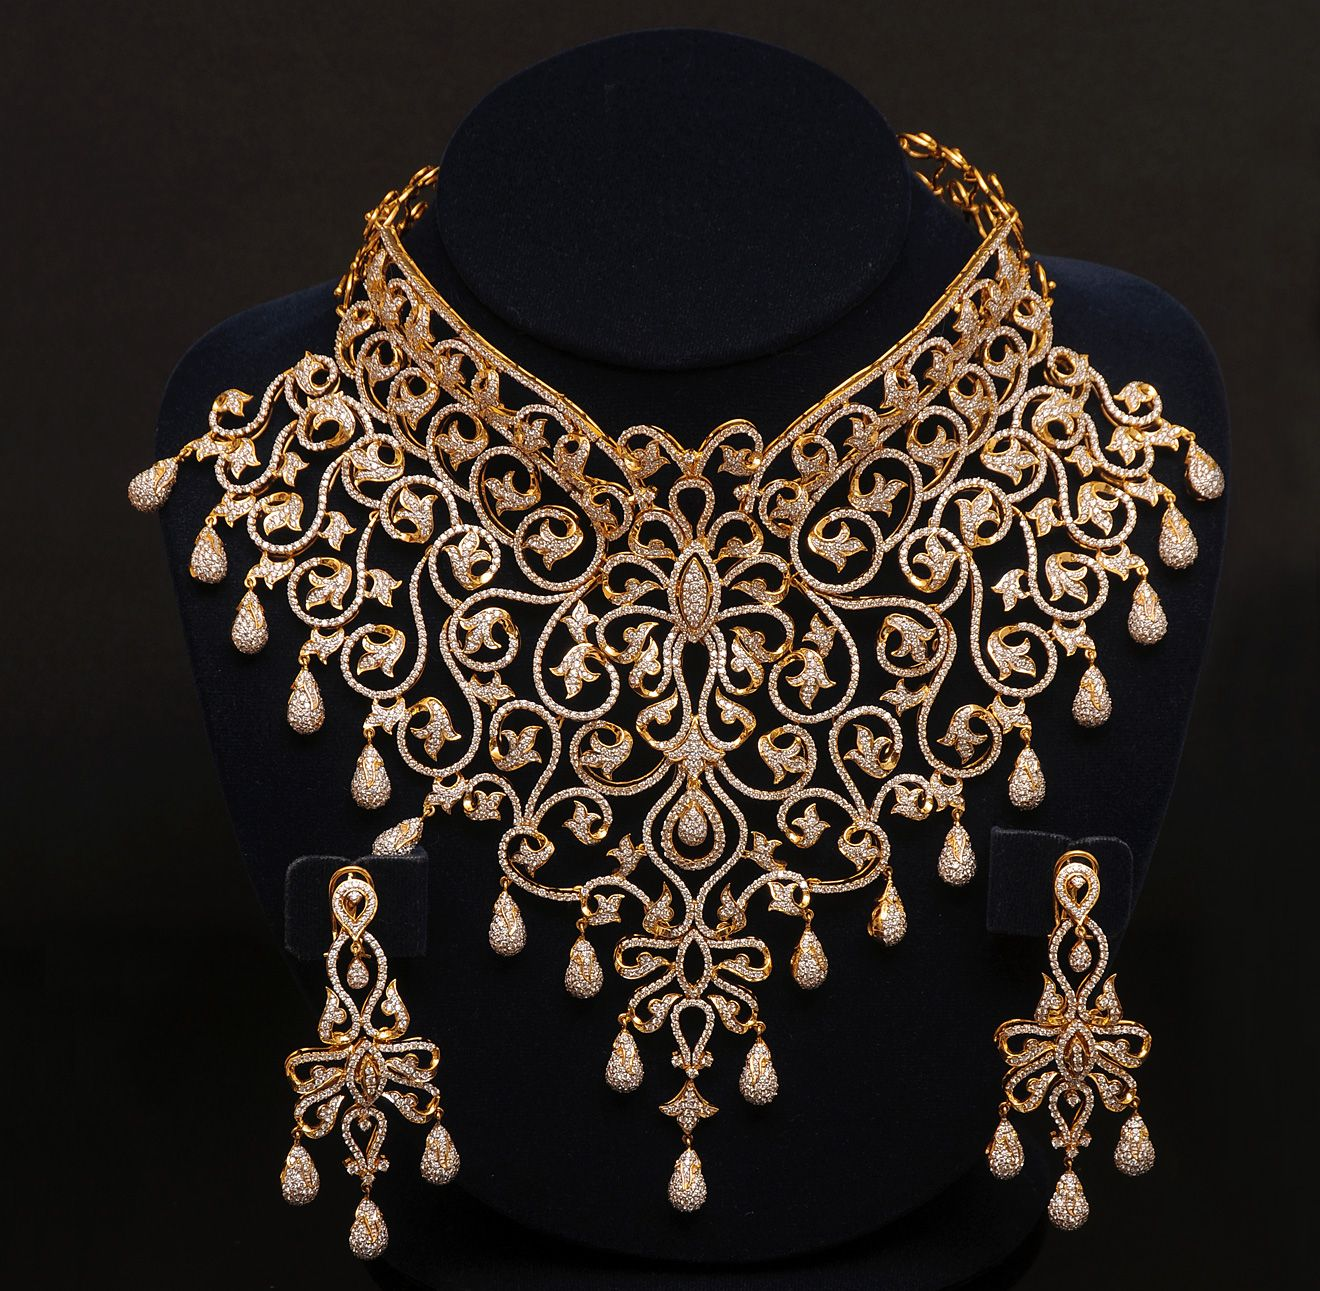 Jewels pinterest beautiful indian wedding jewellery and jewellery - Indian Jewellery And Clothing Bridal Jewelry Diamond Necklace